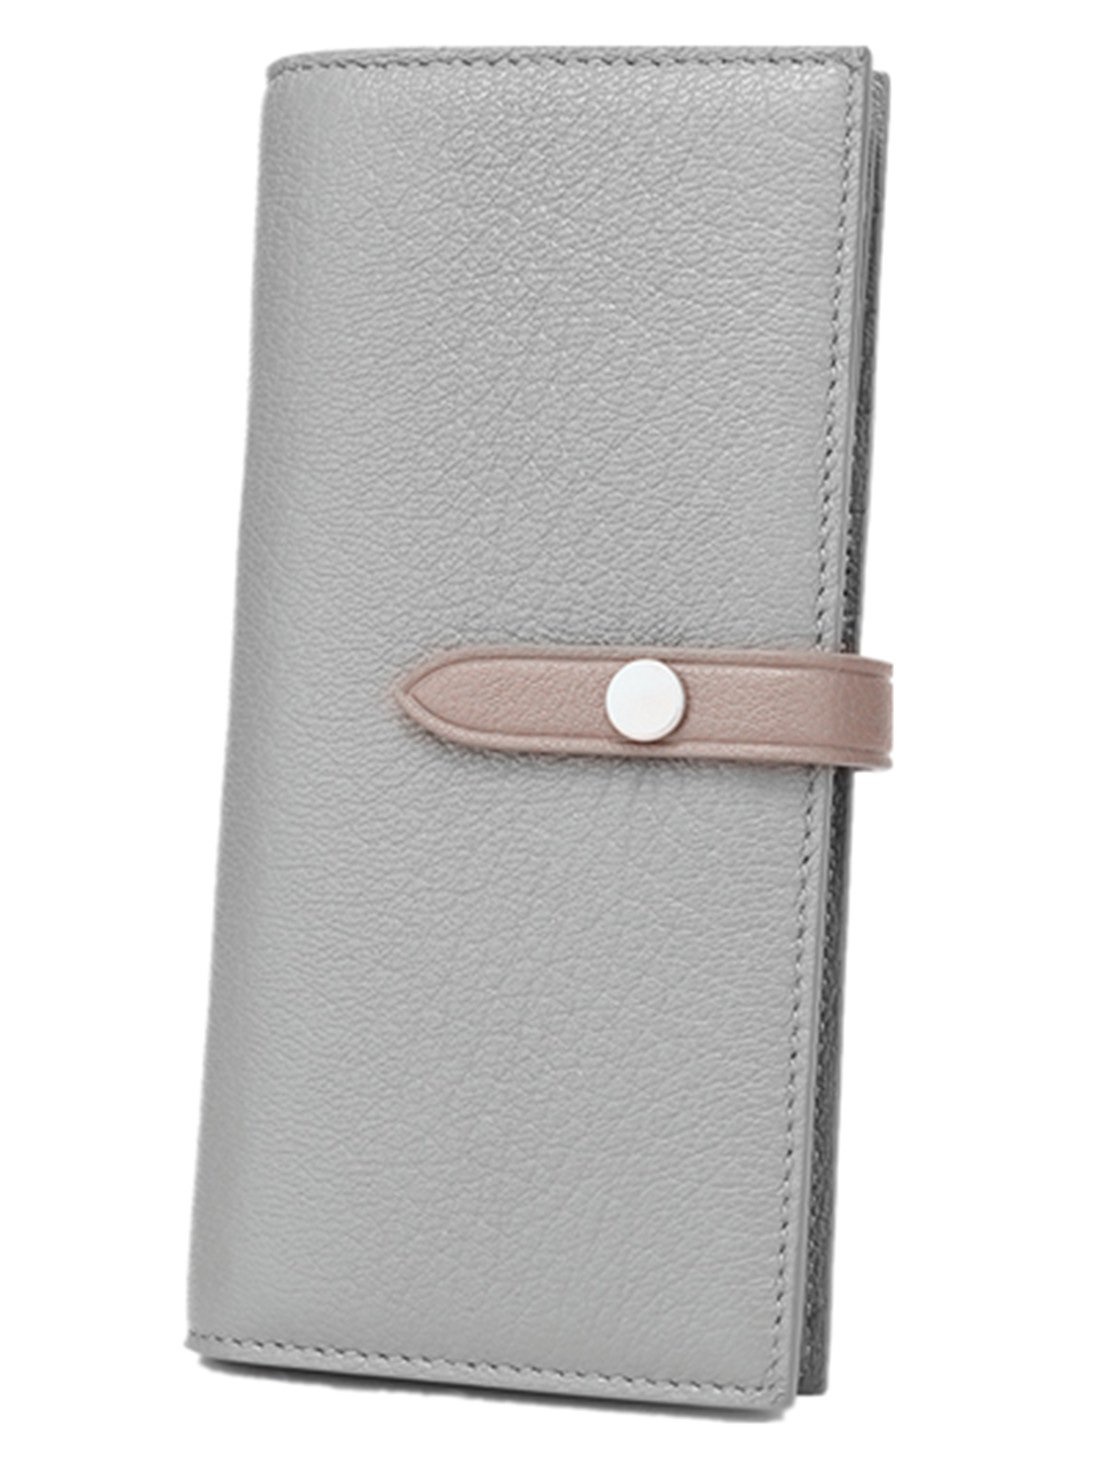 Women's Large Capacity RFID Leather Trifold Wallet Card Holder Buckle Clutch Purse, Light Grey